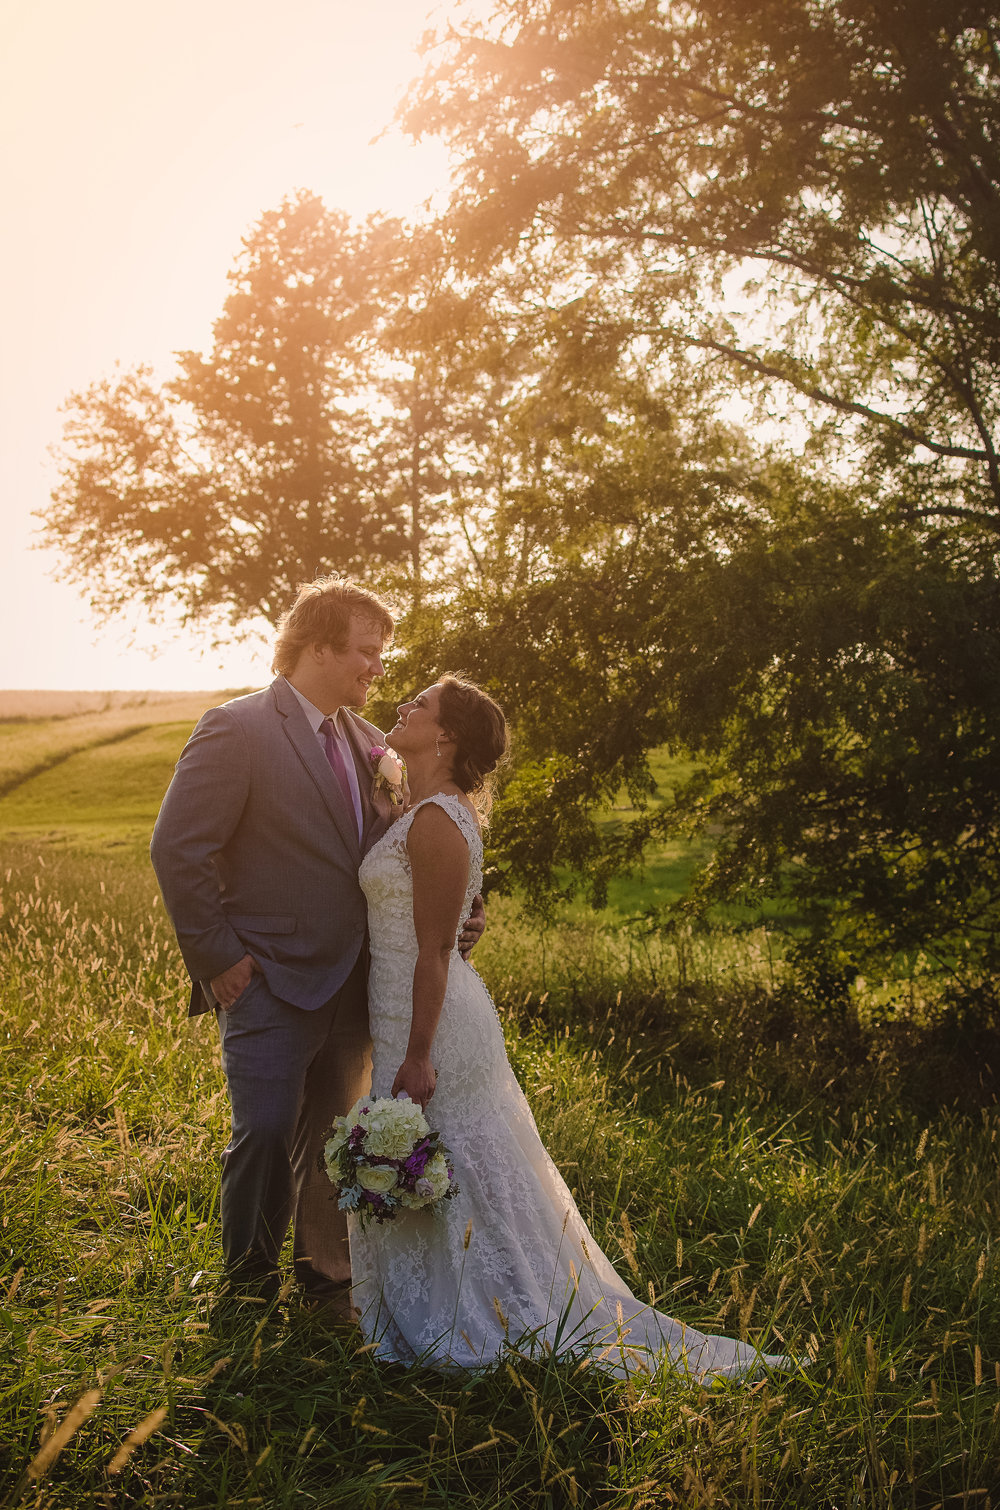 Ryan + Jenna Rustic Wedding